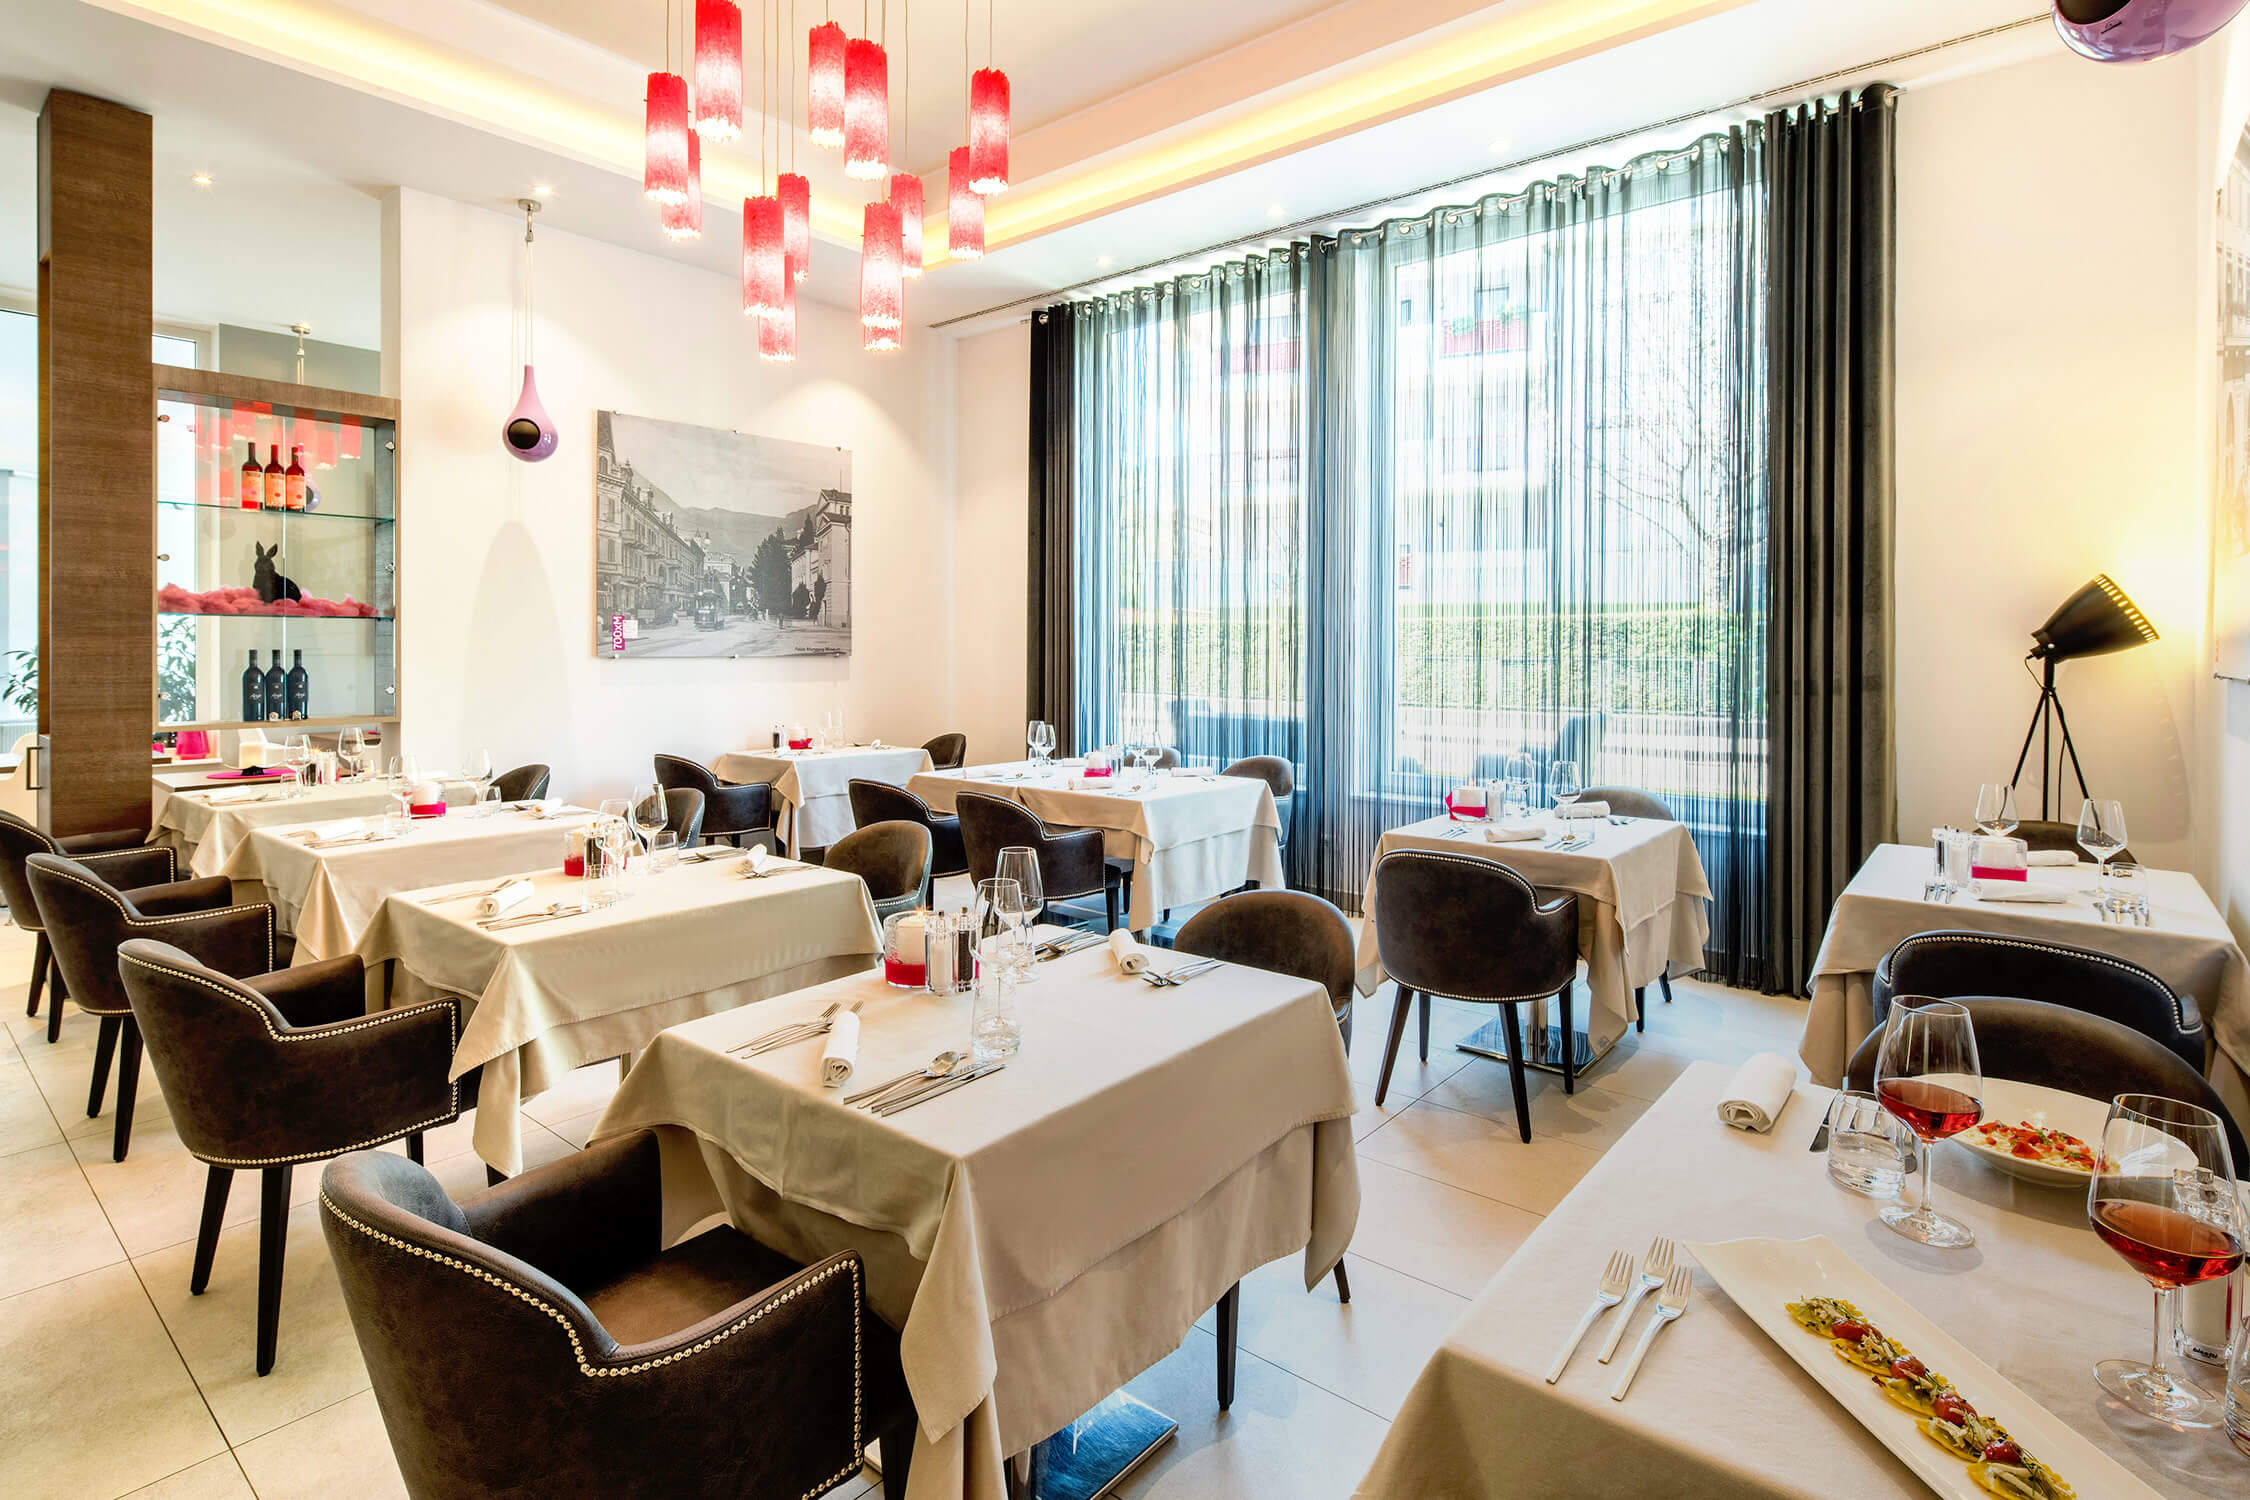 Restaurant The Gallery, Tapas Bar, City Hotel Merano, business lunch, menu, aperitif